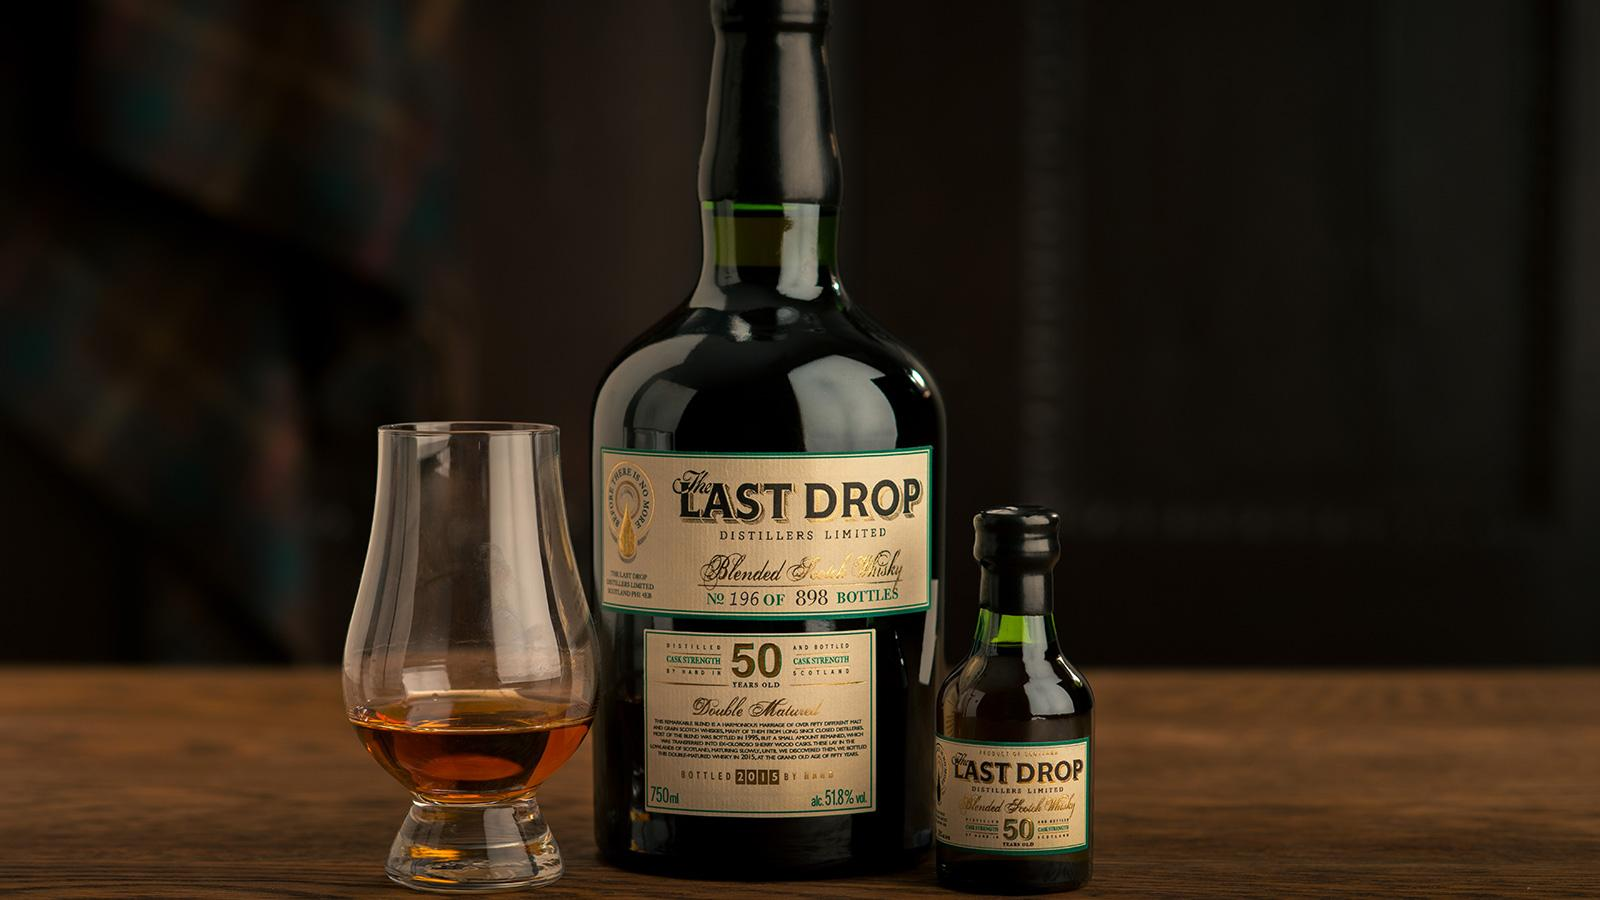 Last Drop Distillers Uncork Old Spirits At A Castle By The Sea